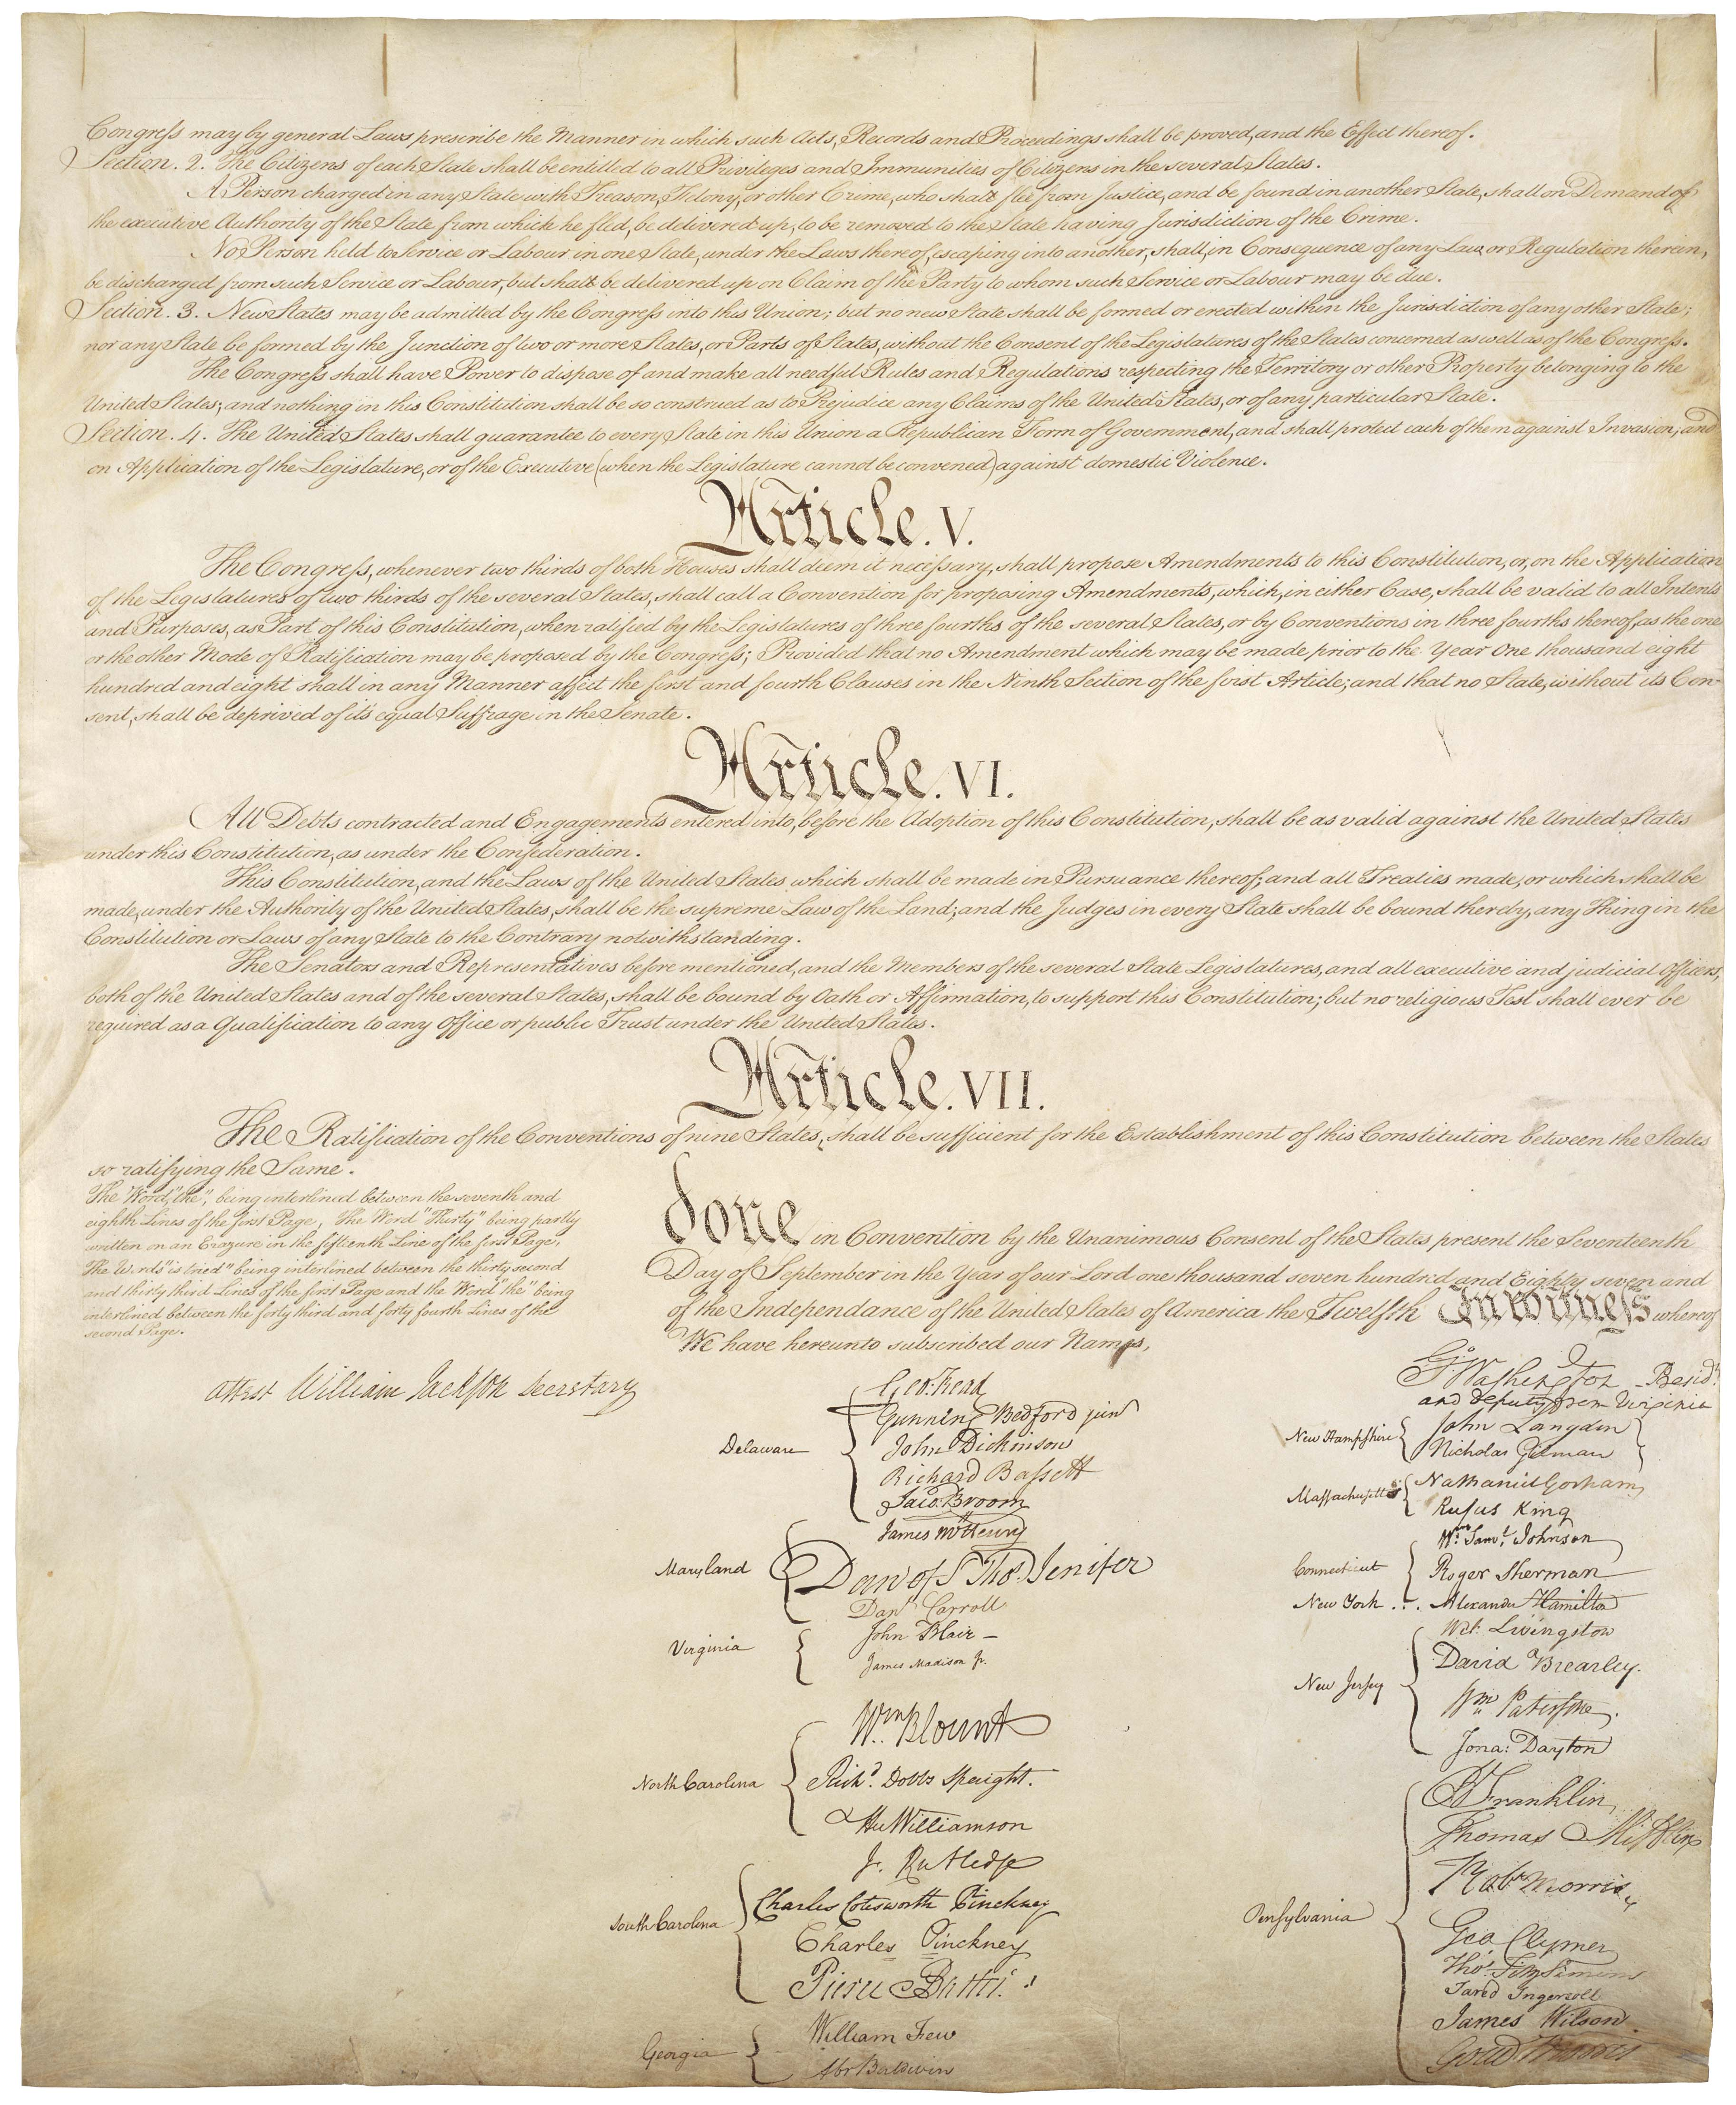 Page 4 U.S. Constitution (image of original)